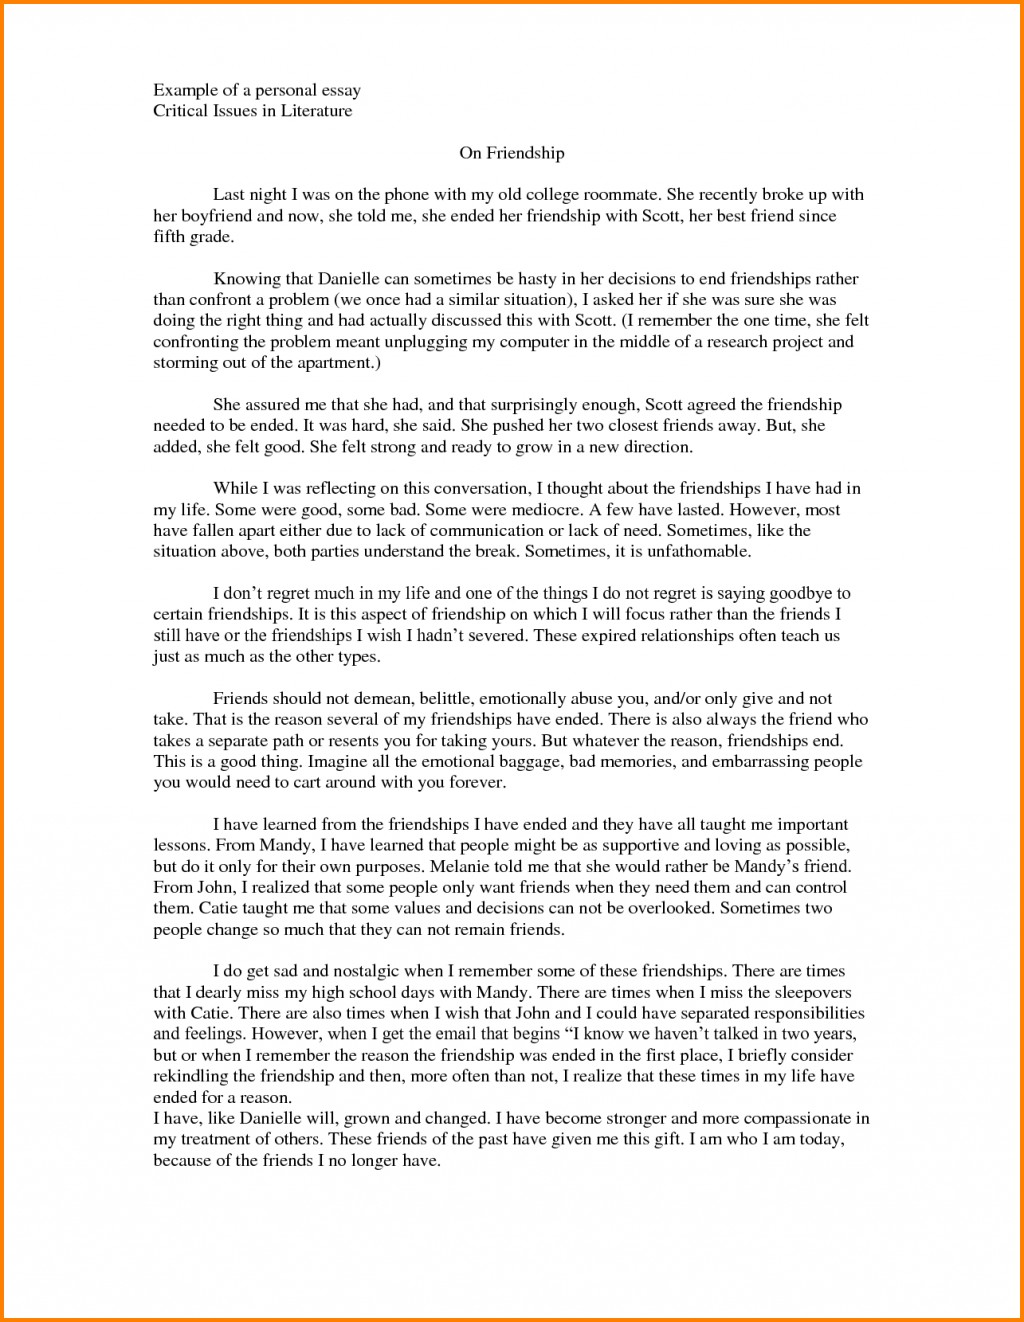 001 Personal Statement Essayspersonaljpg Writing Essays L Submissions Best Essay 2017 Submit To Buzzfeed Salon Large